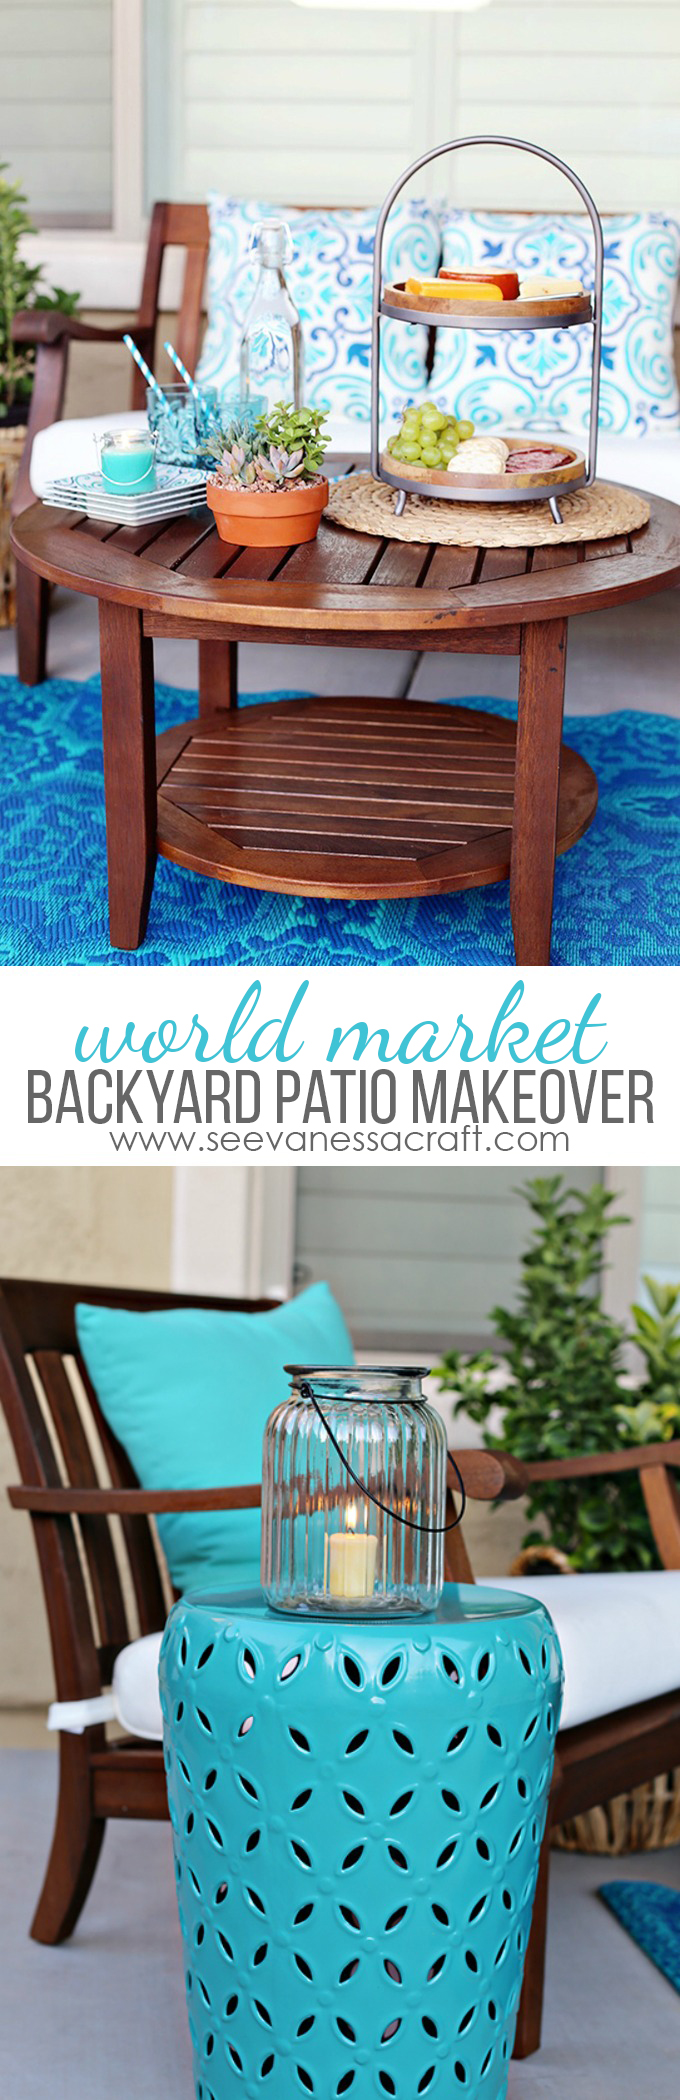 World Market Backyard Patio Makeover